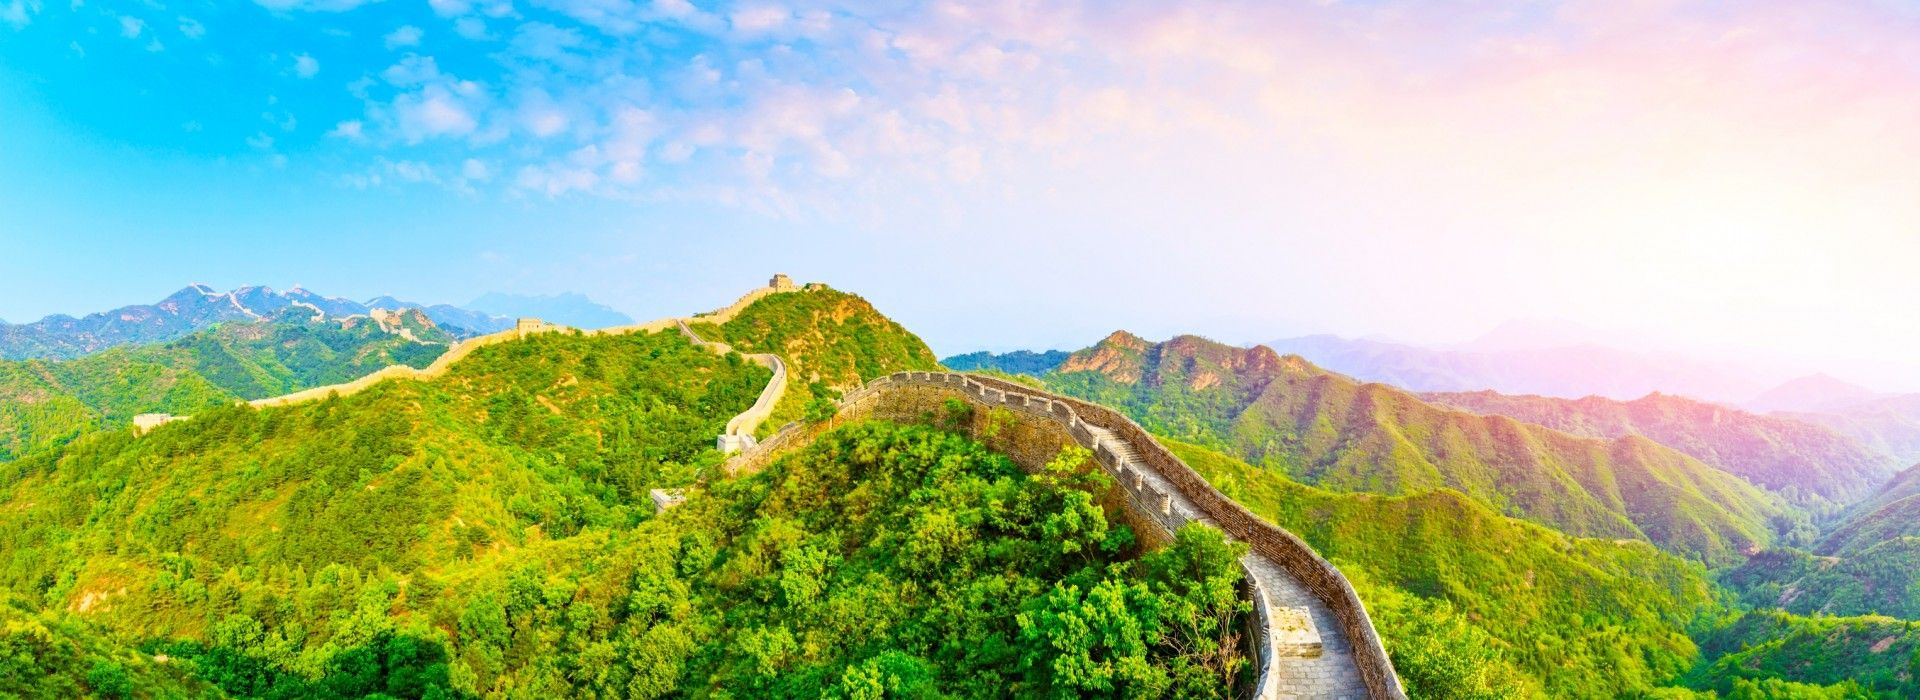 City sightseeing Tours in Xian